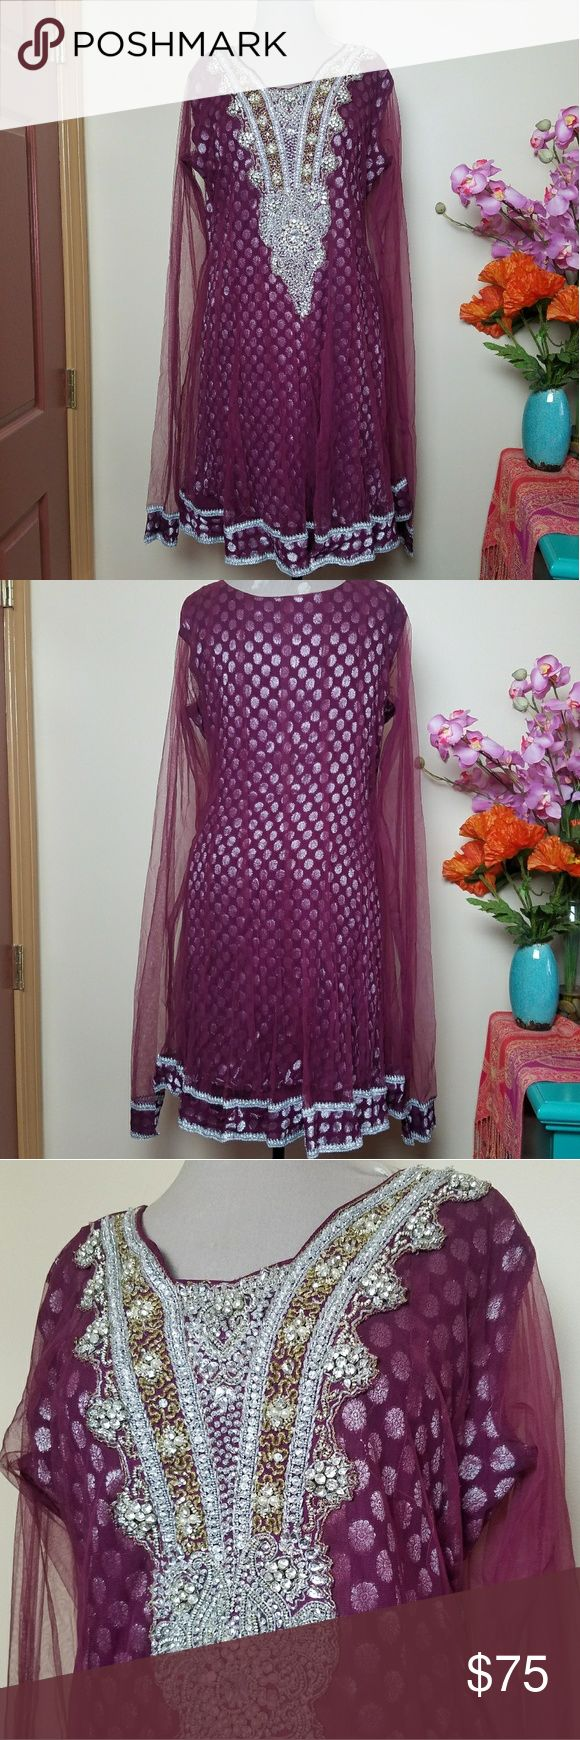 Burgundy Silver Handmade Indian Salwar Kameez Suit Stunning tunic dress and pant set! Lots of movement with extra long sheer sleeves to give a gathered effect when worn. Tons of rhinestone, sequin, and silver bullion embroidery embellishing the front. Sheer tulle above a layer of silver threaded fabric give a fun effect! Trimmed with crocheted bullion lace. Would fit a large or extra large. Pants are adjustable with drawstring. Handmade Dresses Mini